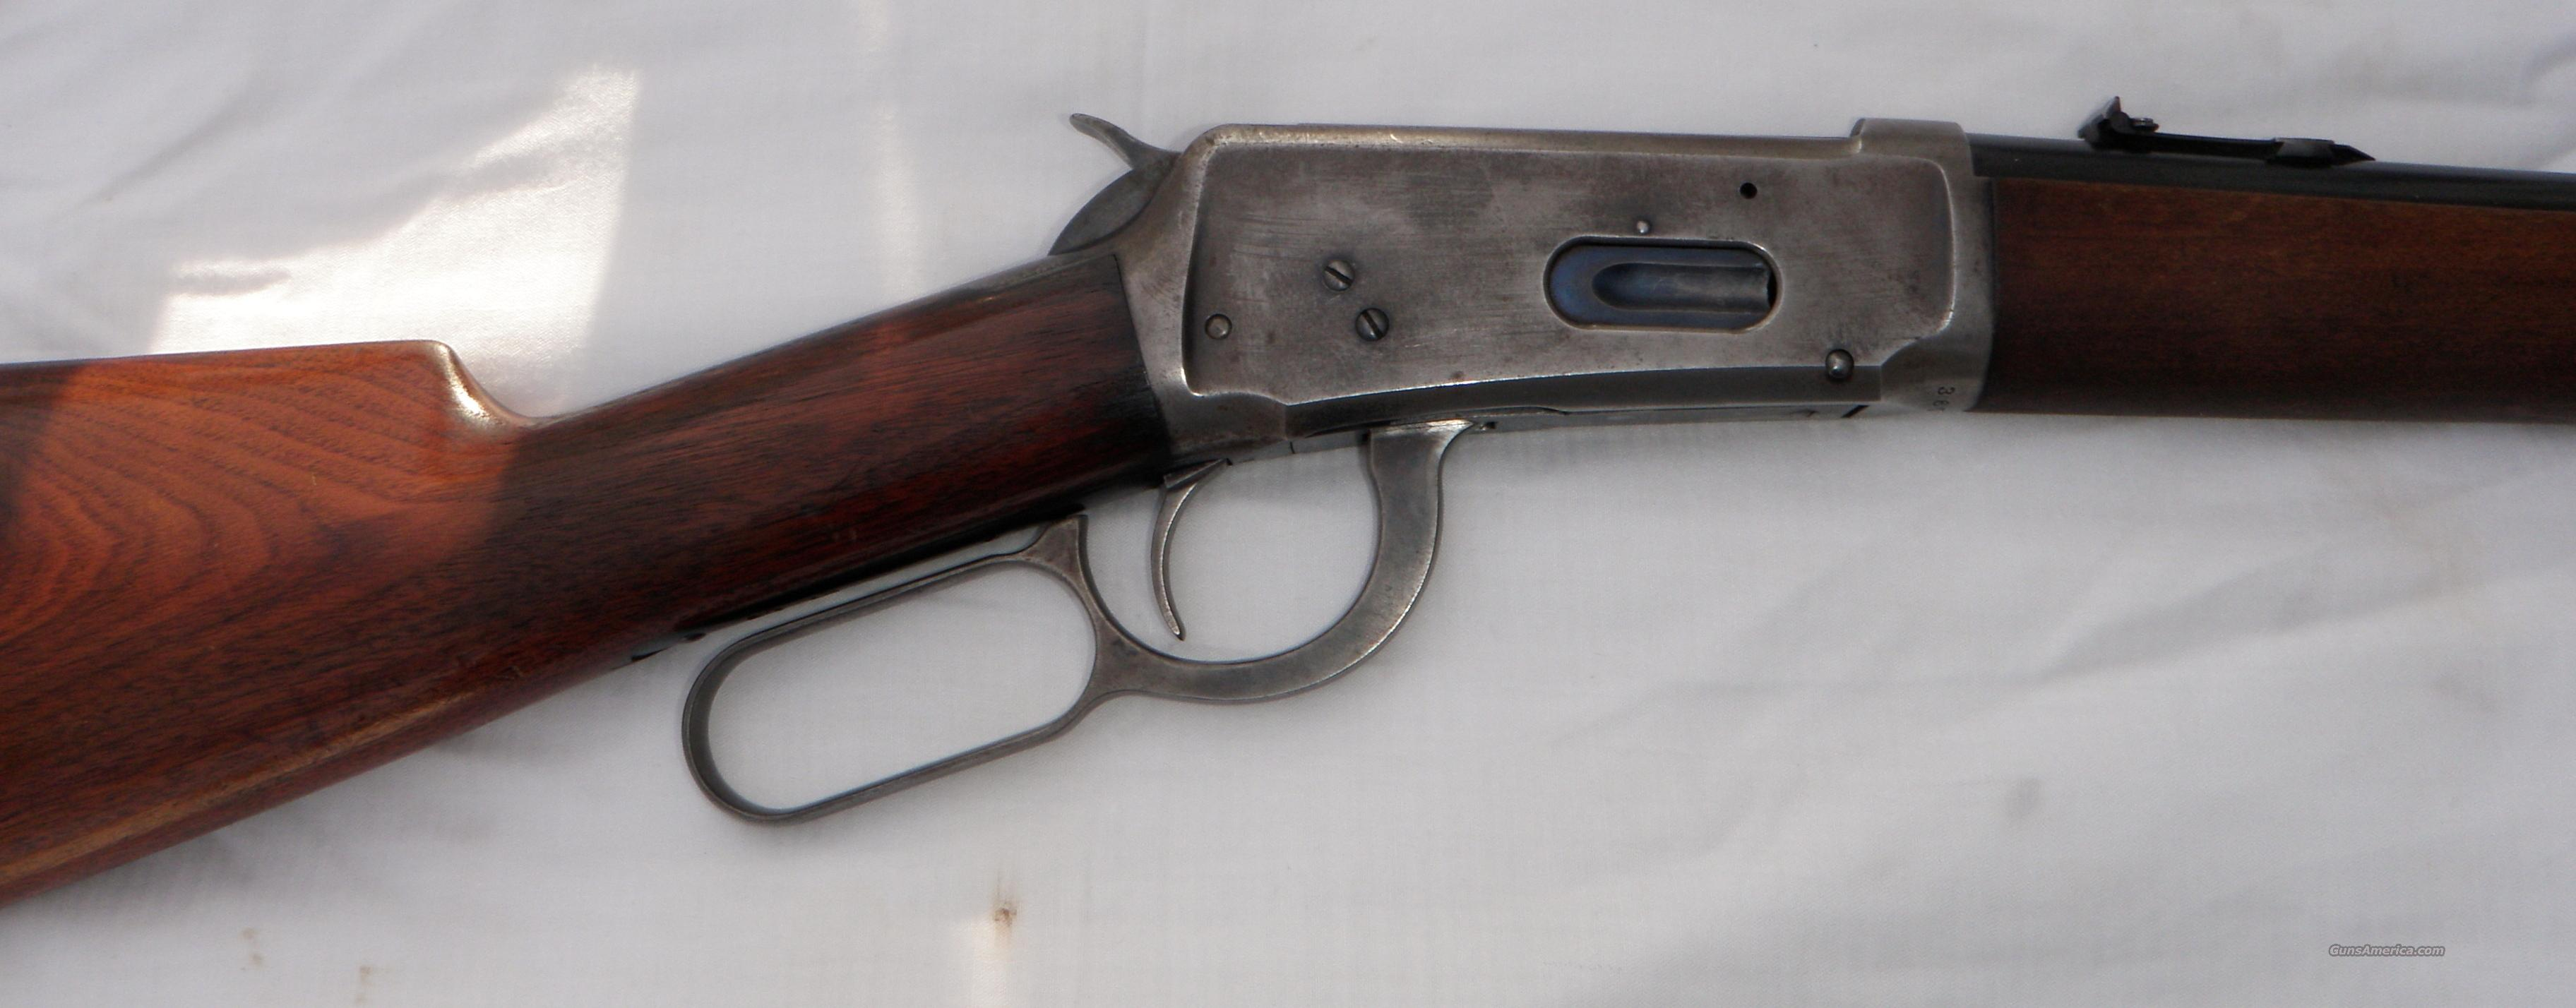 Winchester 1894 saddle ring .32 special  Guns > Rifles > Winchester Rifles - Modern Lever > Model 94 > Pre-64